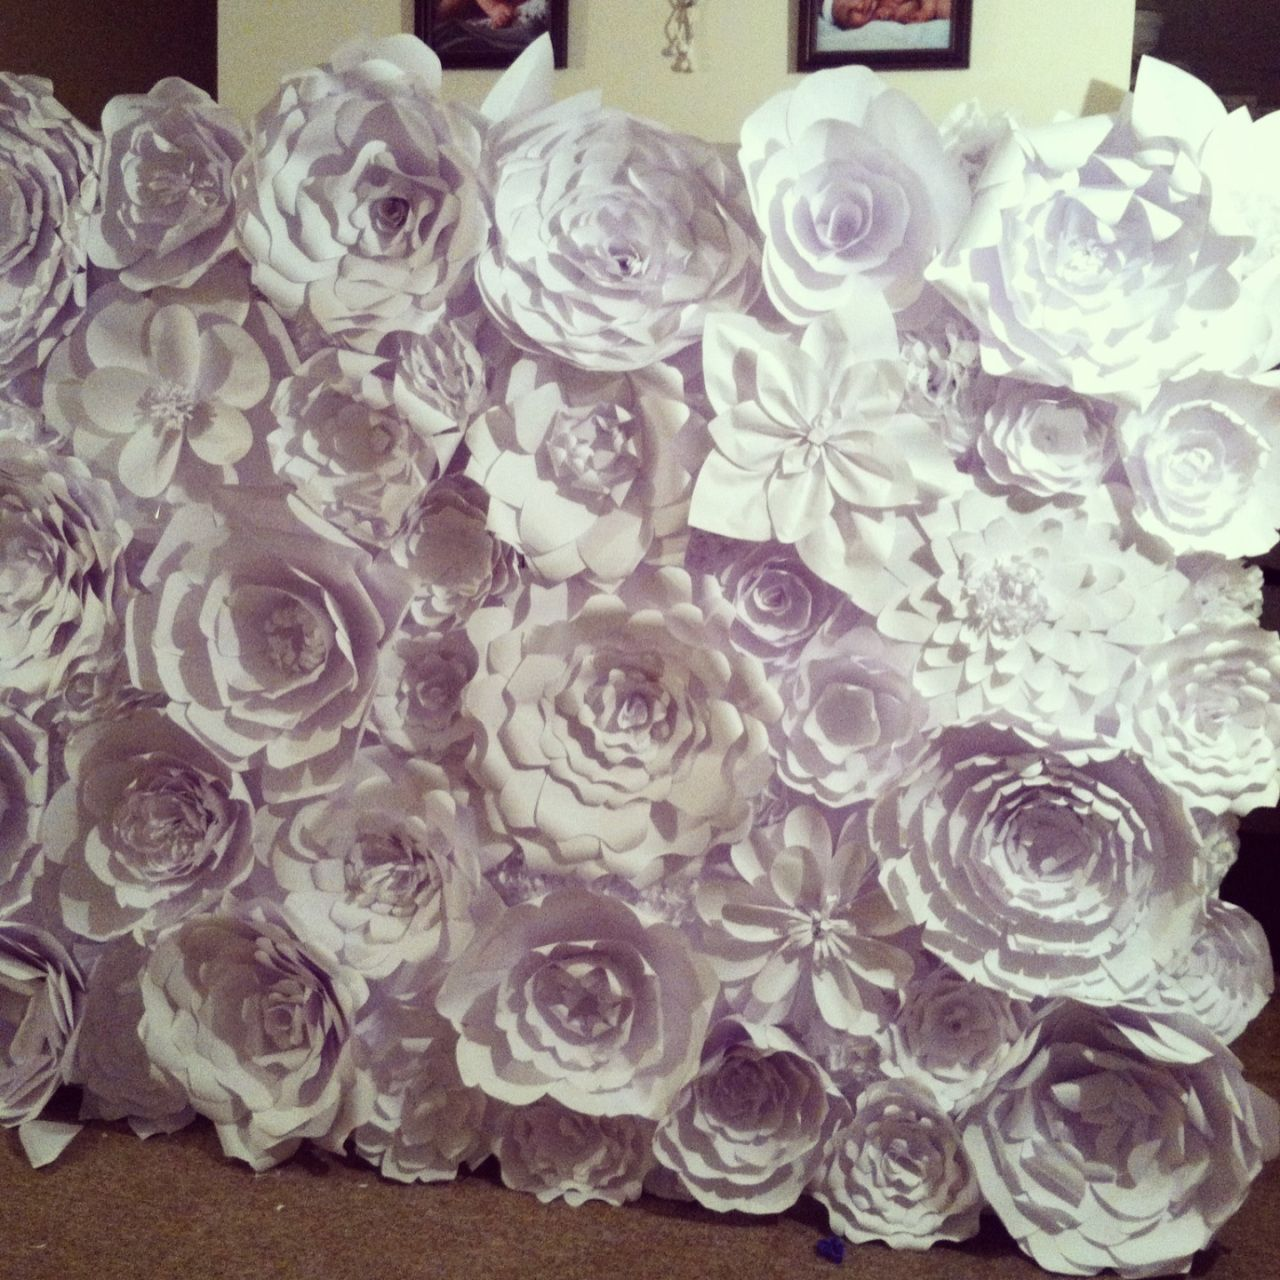 How I Built A Giant Flower Wall (as Cheaply As Possible)